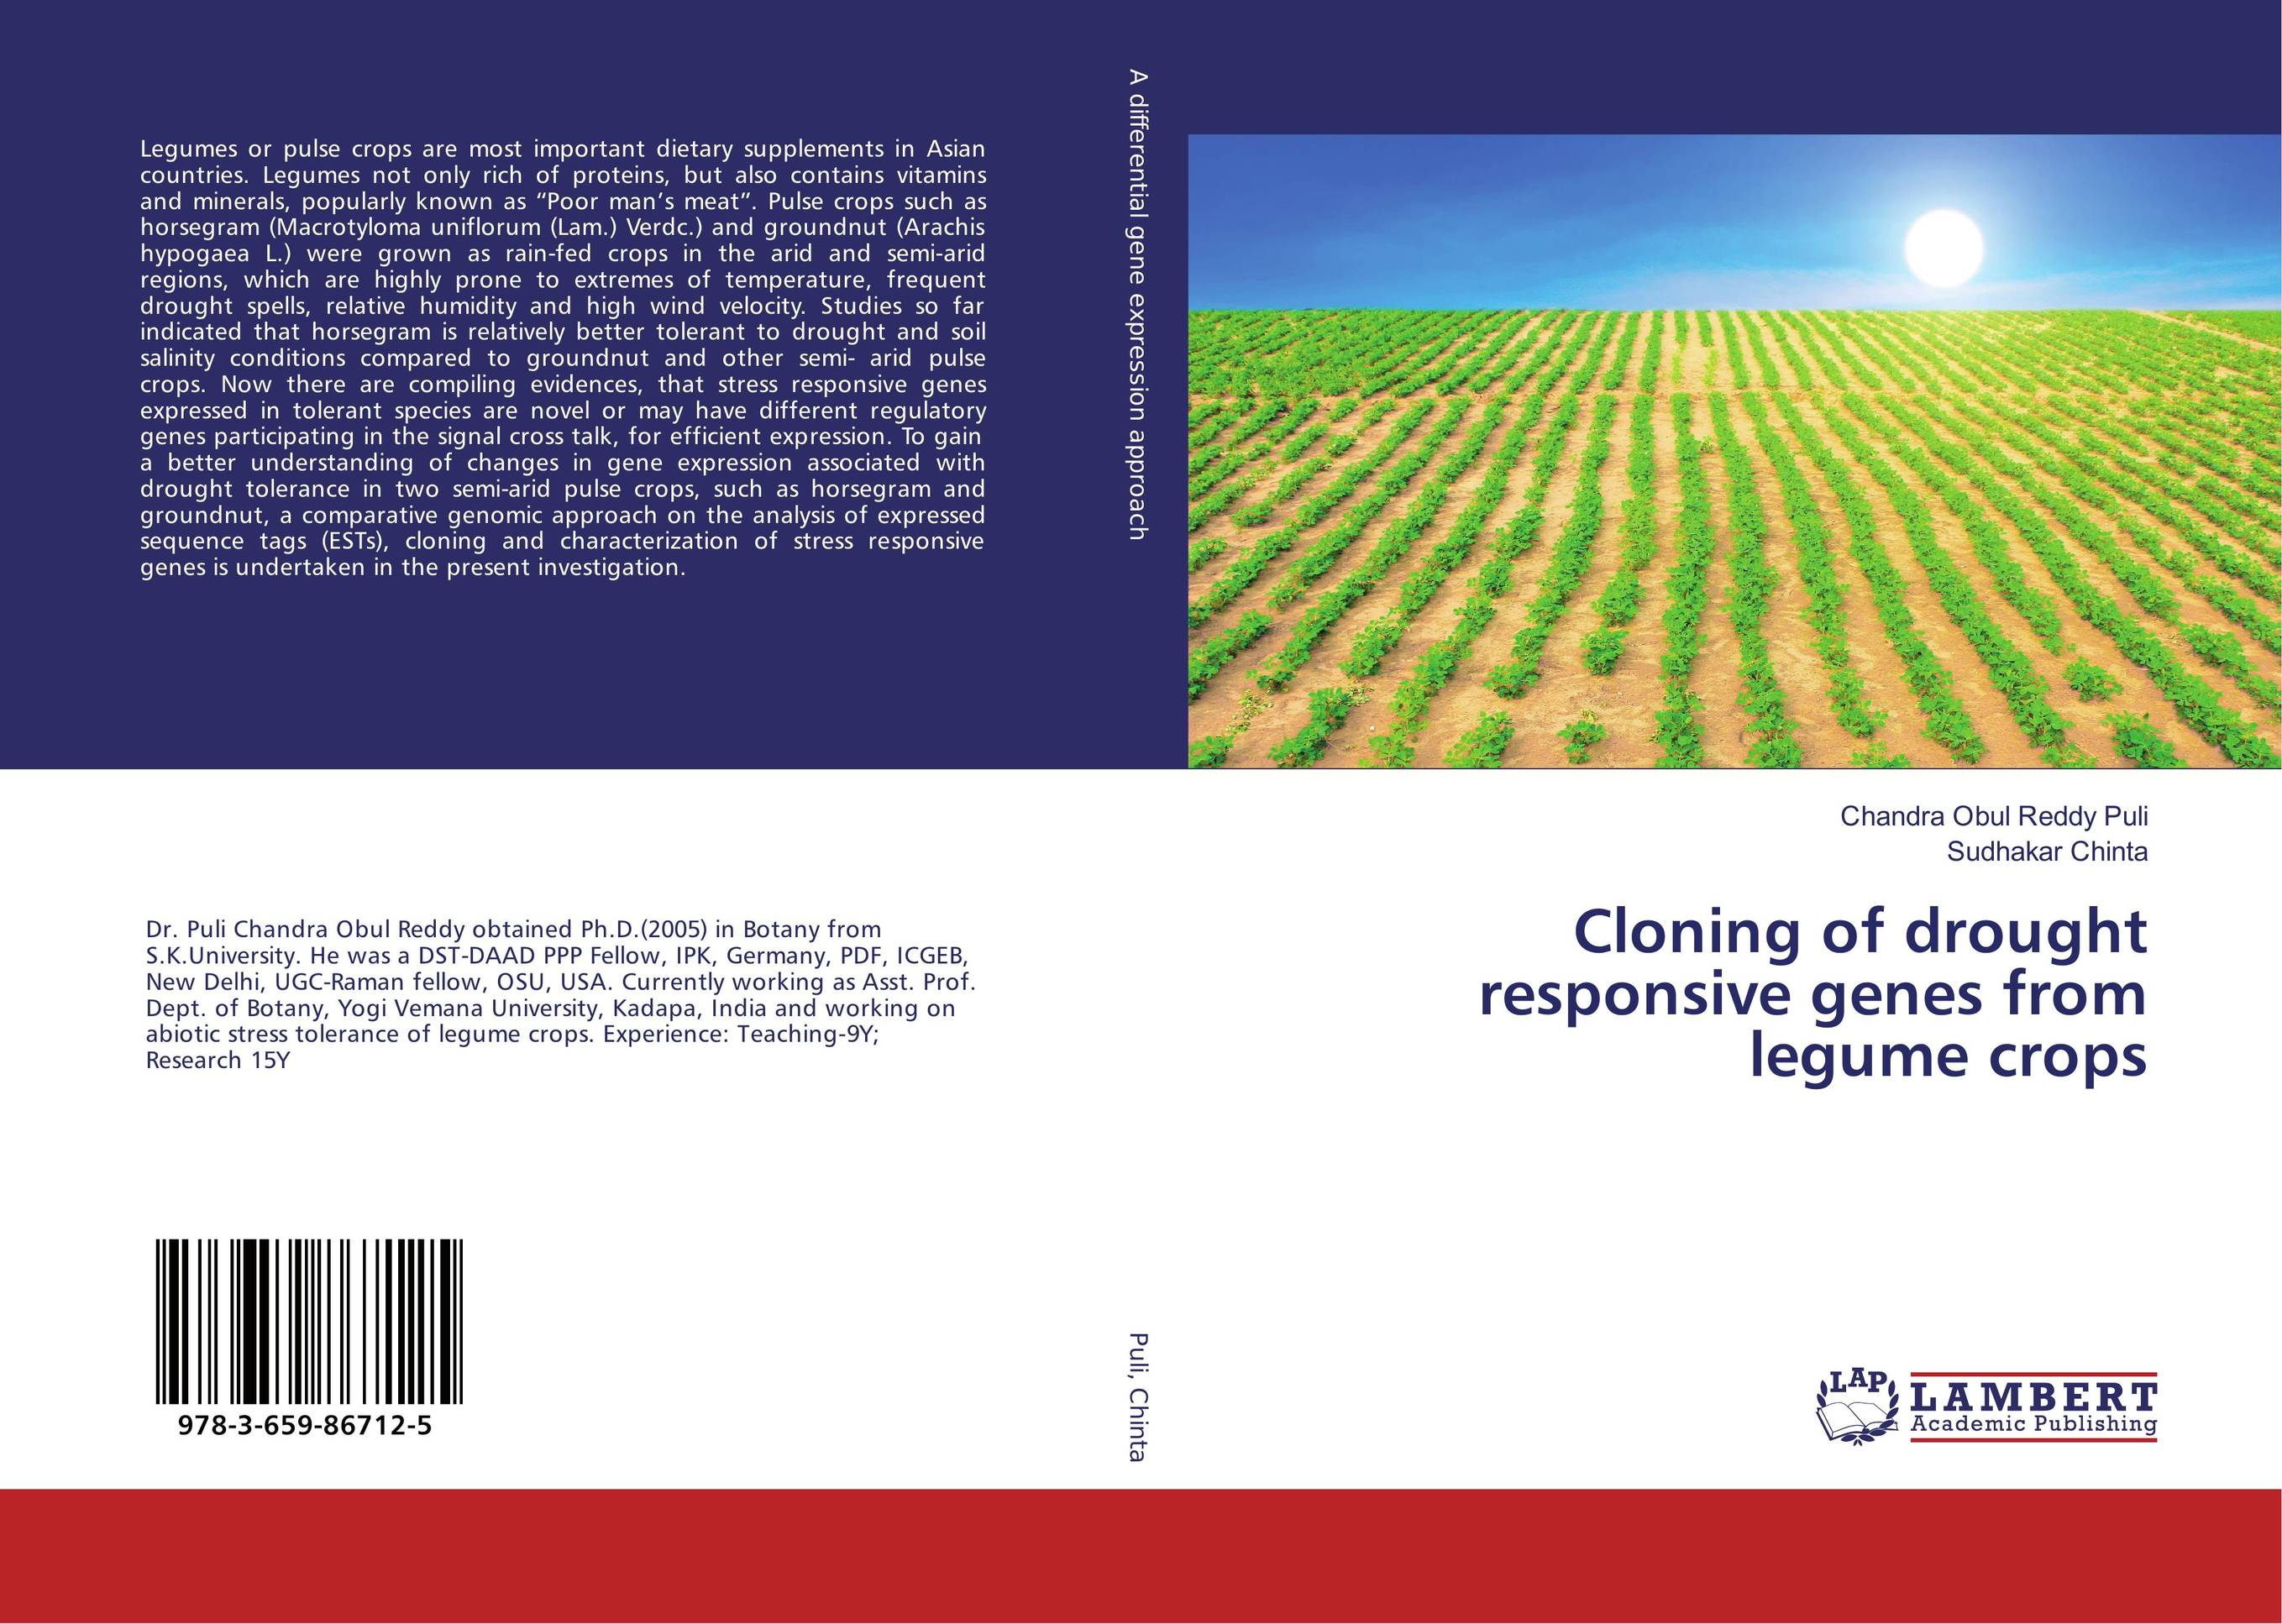 Cloning of drought responsive genes from legume crops rakesh singh amit kumar singh and g k garg cloning of glna from bacillus brevis